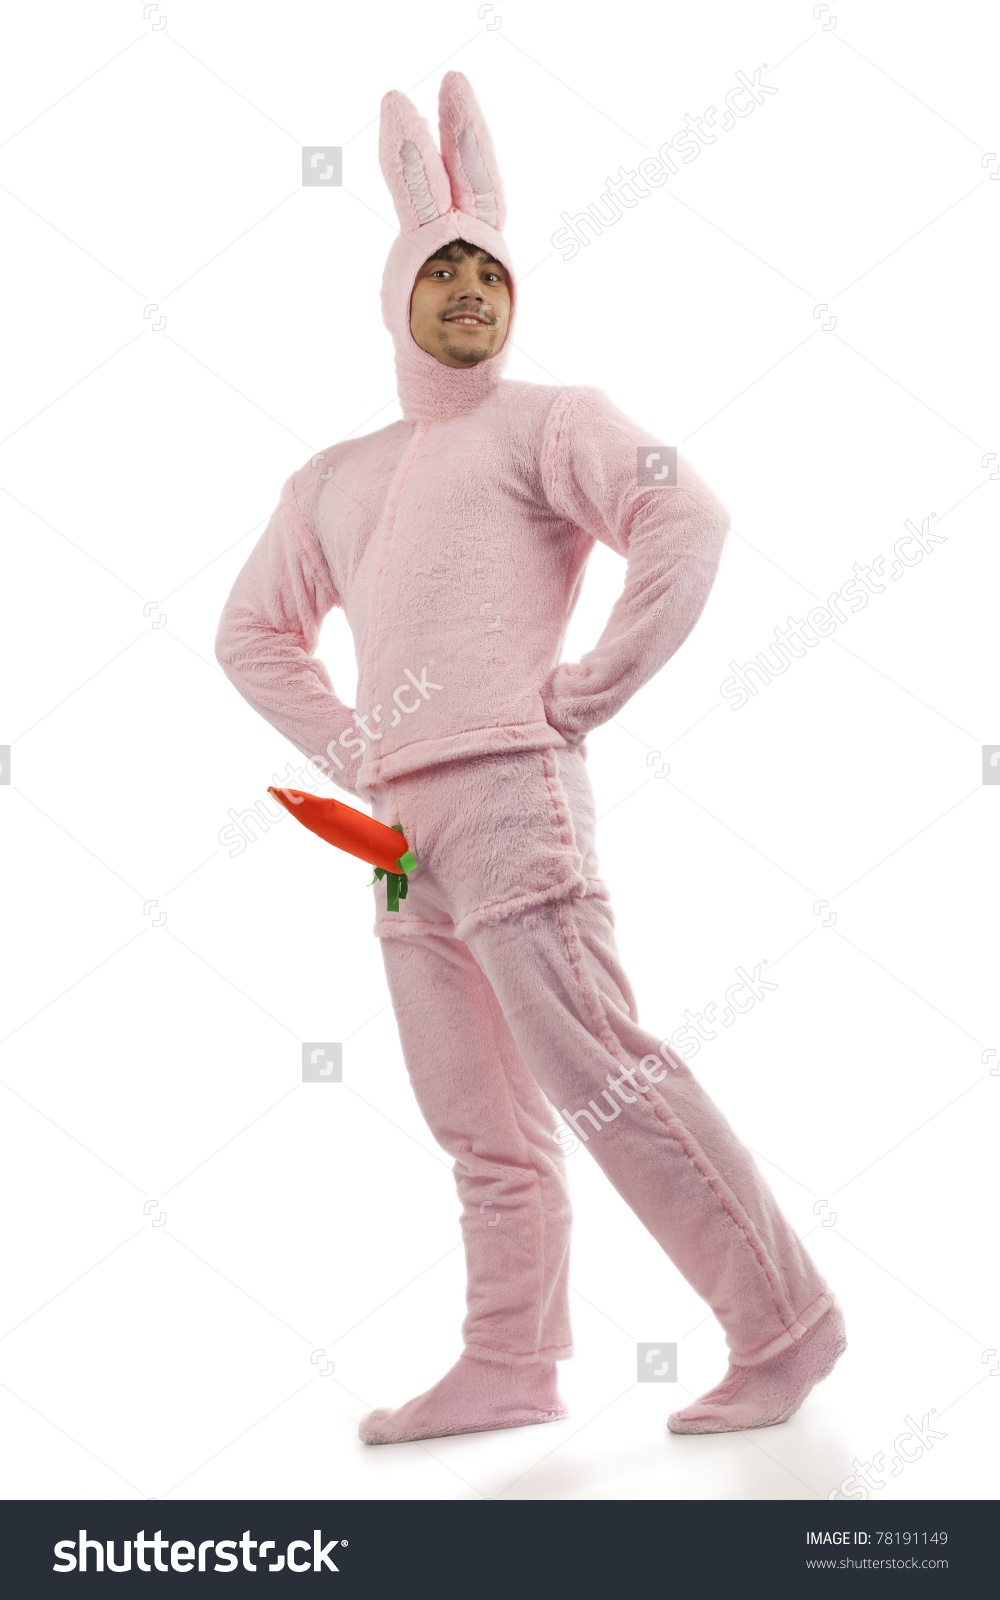 Title: Portrait of cheerful pink rabbit is proud of his carrot isolated on white background Are you hungry or just happy to see me?